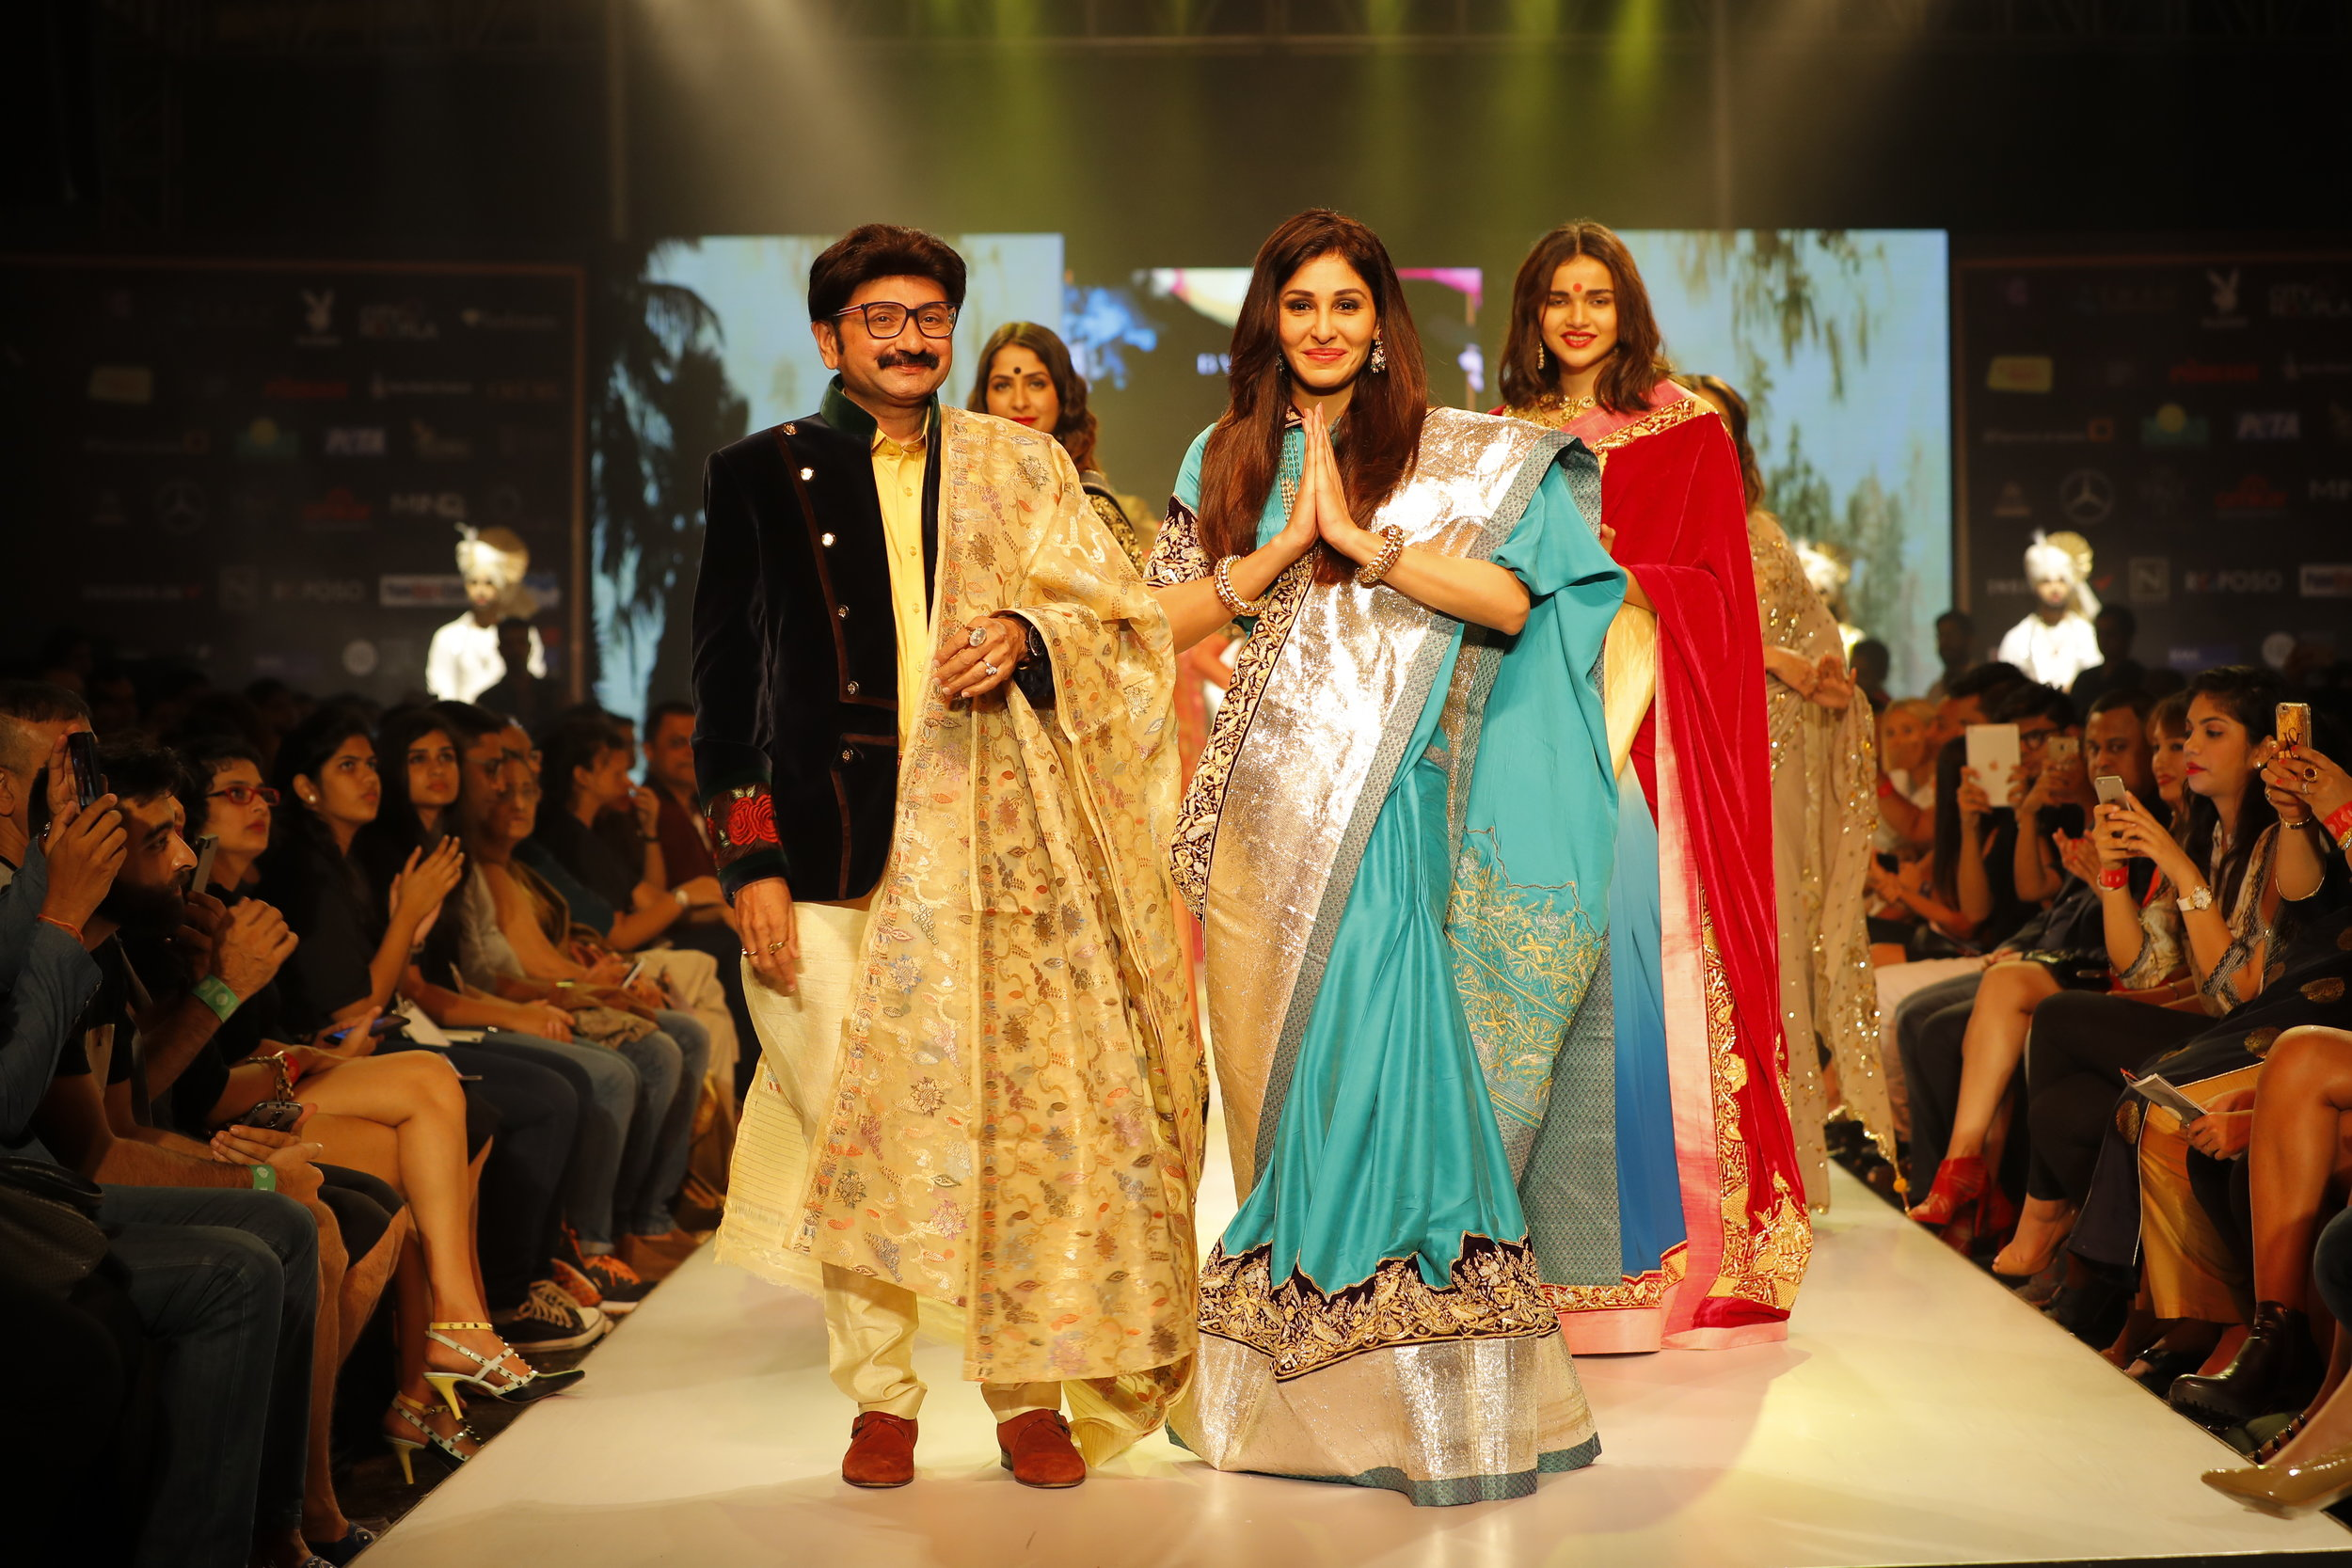 Actress Pooja Chopra as showstopper with Designer Ashok Maaney